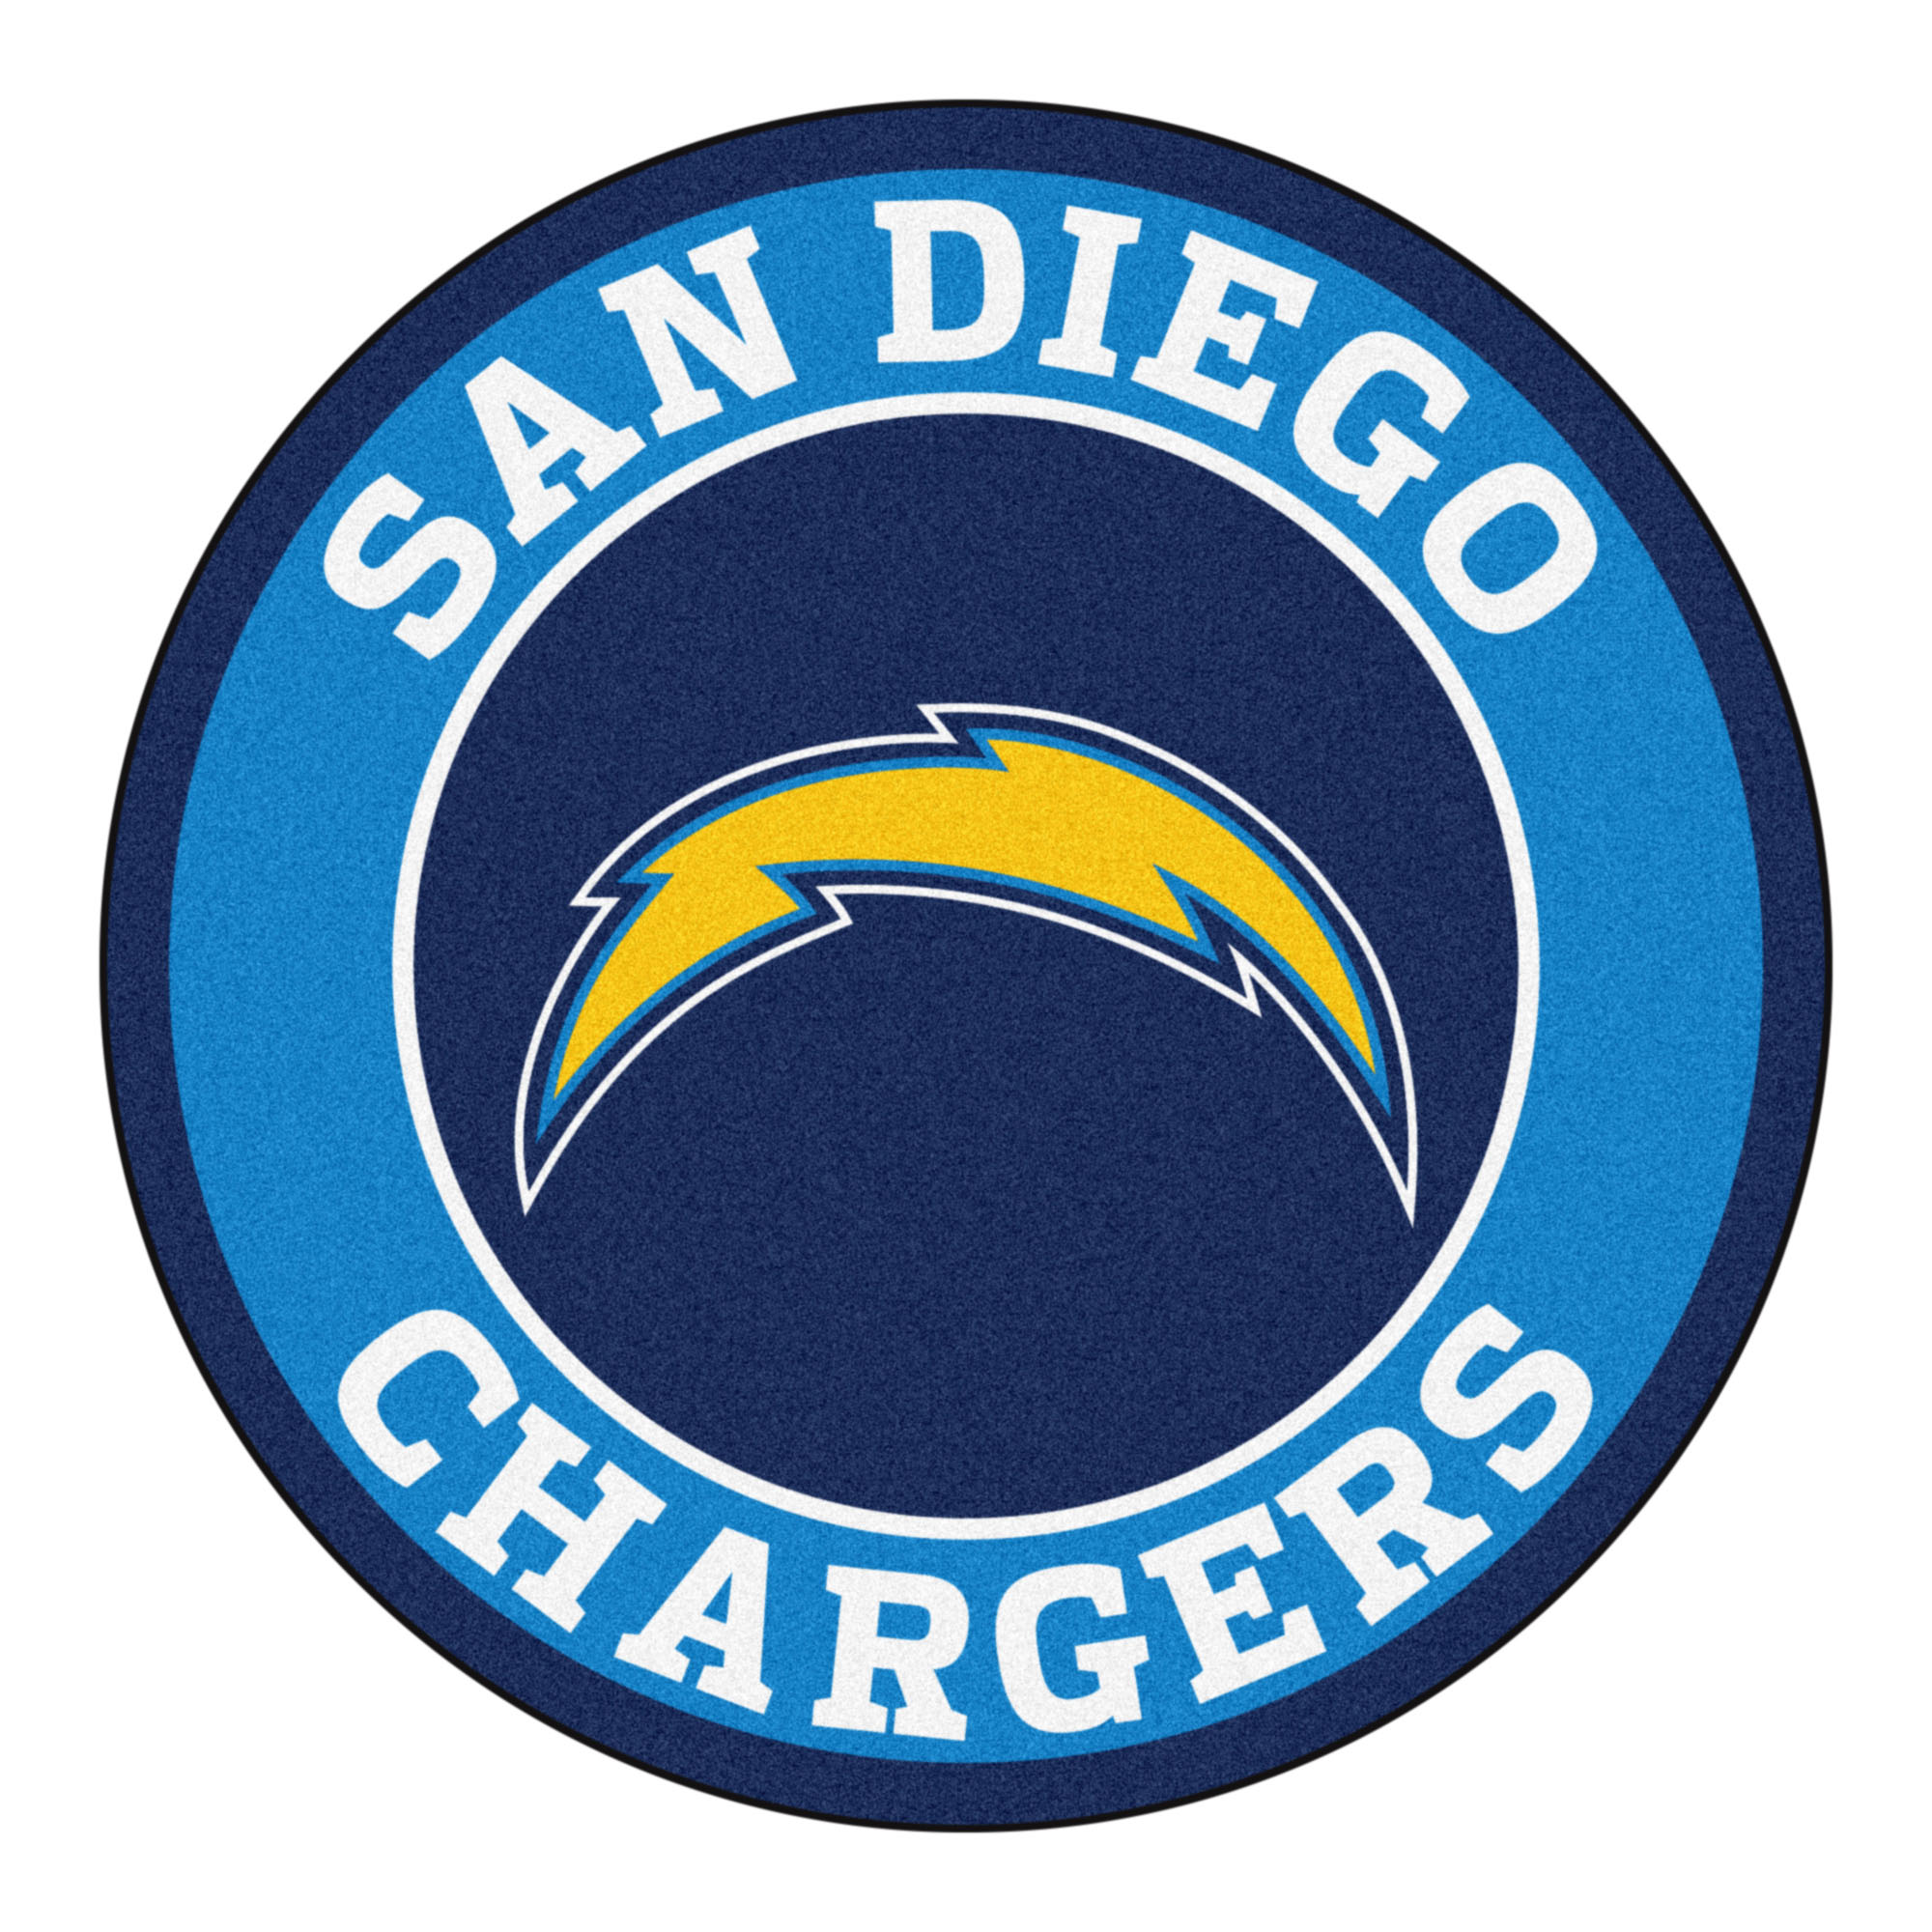 Most Viewed San Diego Chargers Wallpapers 4k Wallpapers